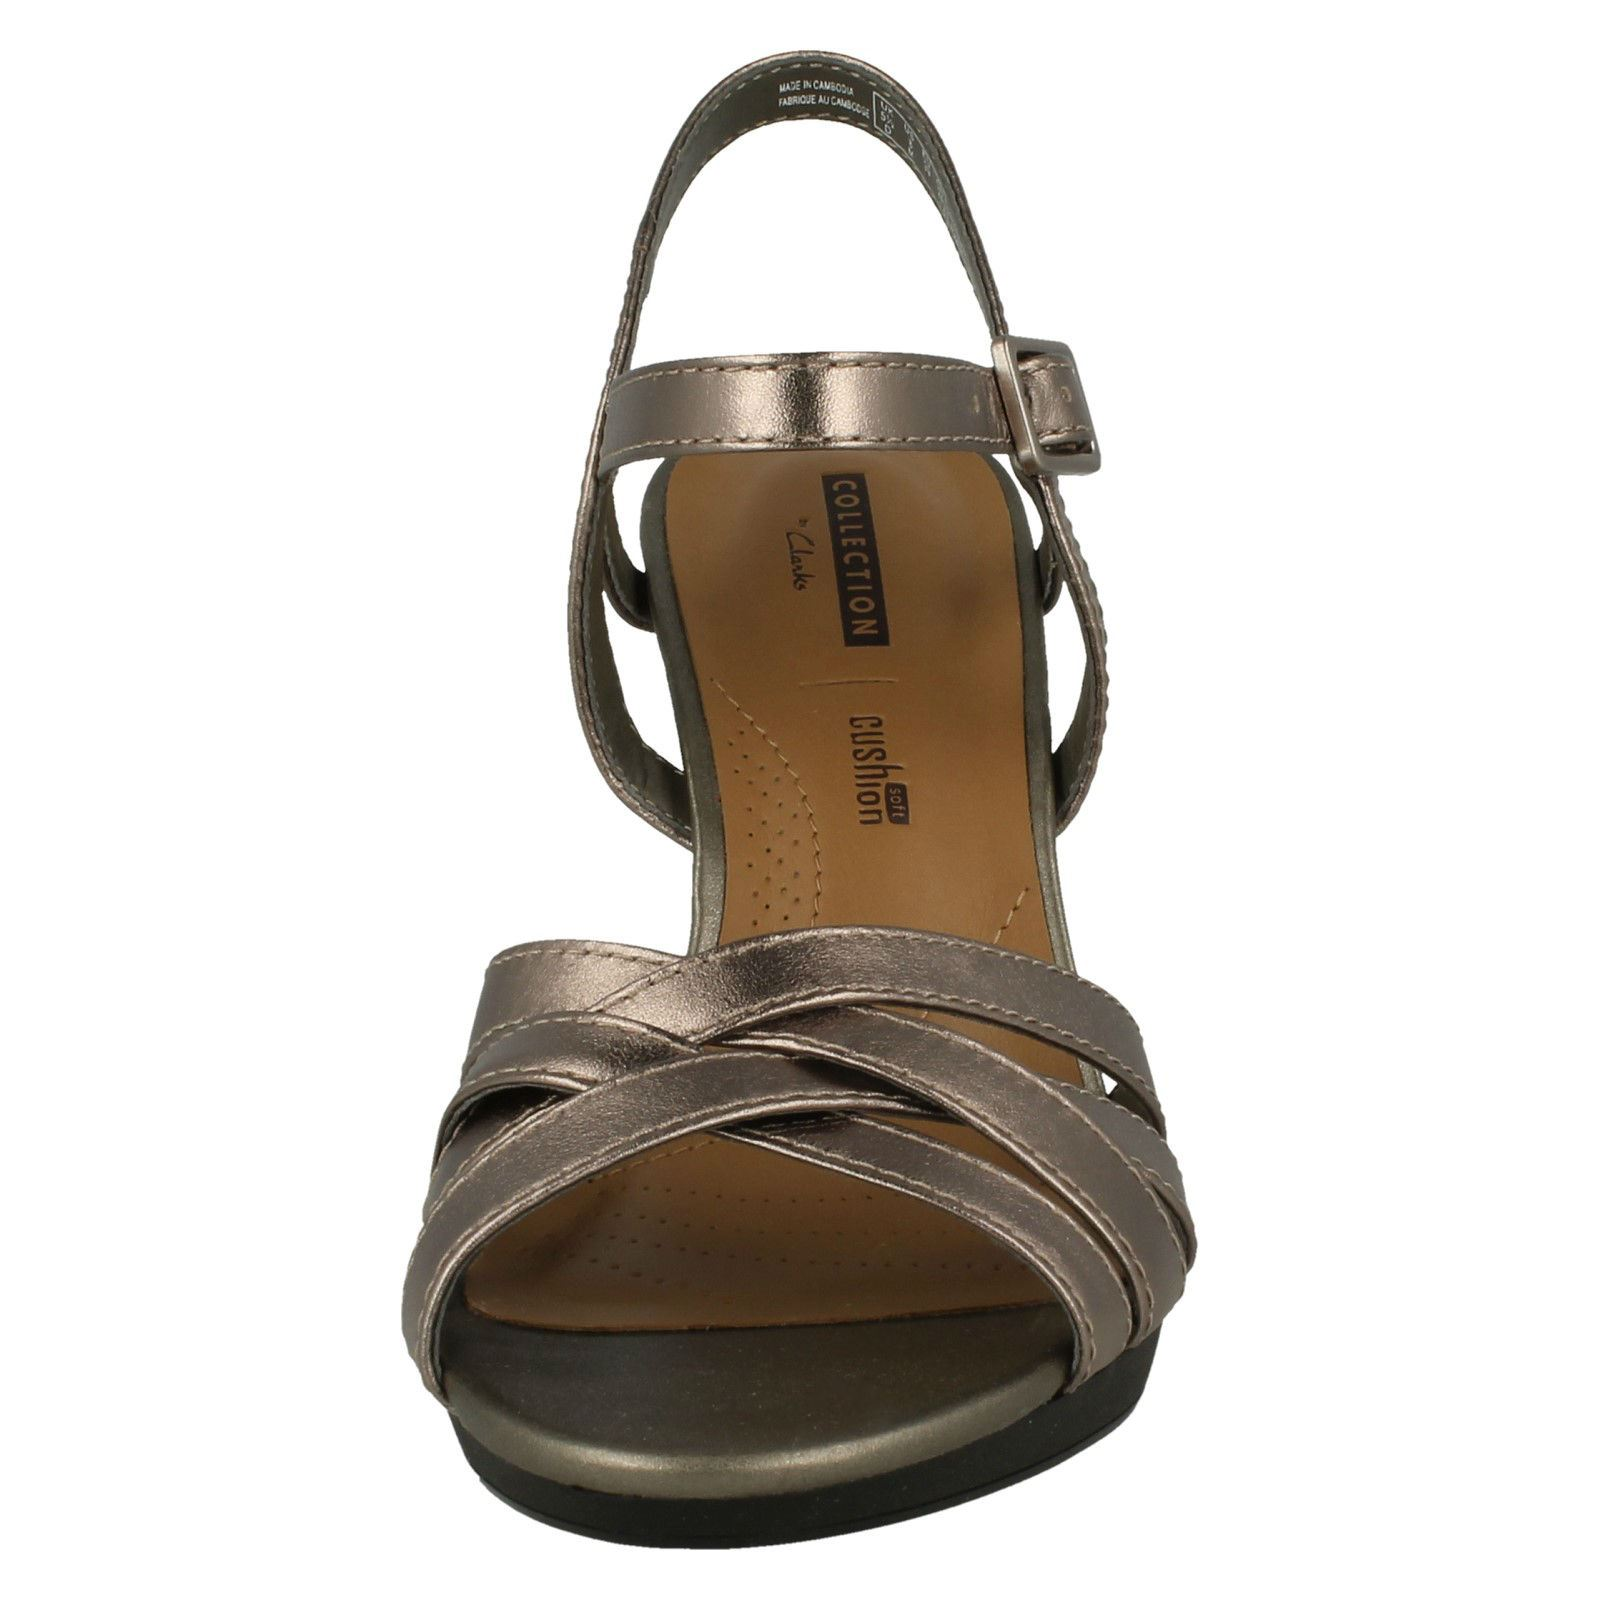 cb7a7962e92 Details about Ladies Clarks Slingback High Heel Sandals 'Adriel Wavy'